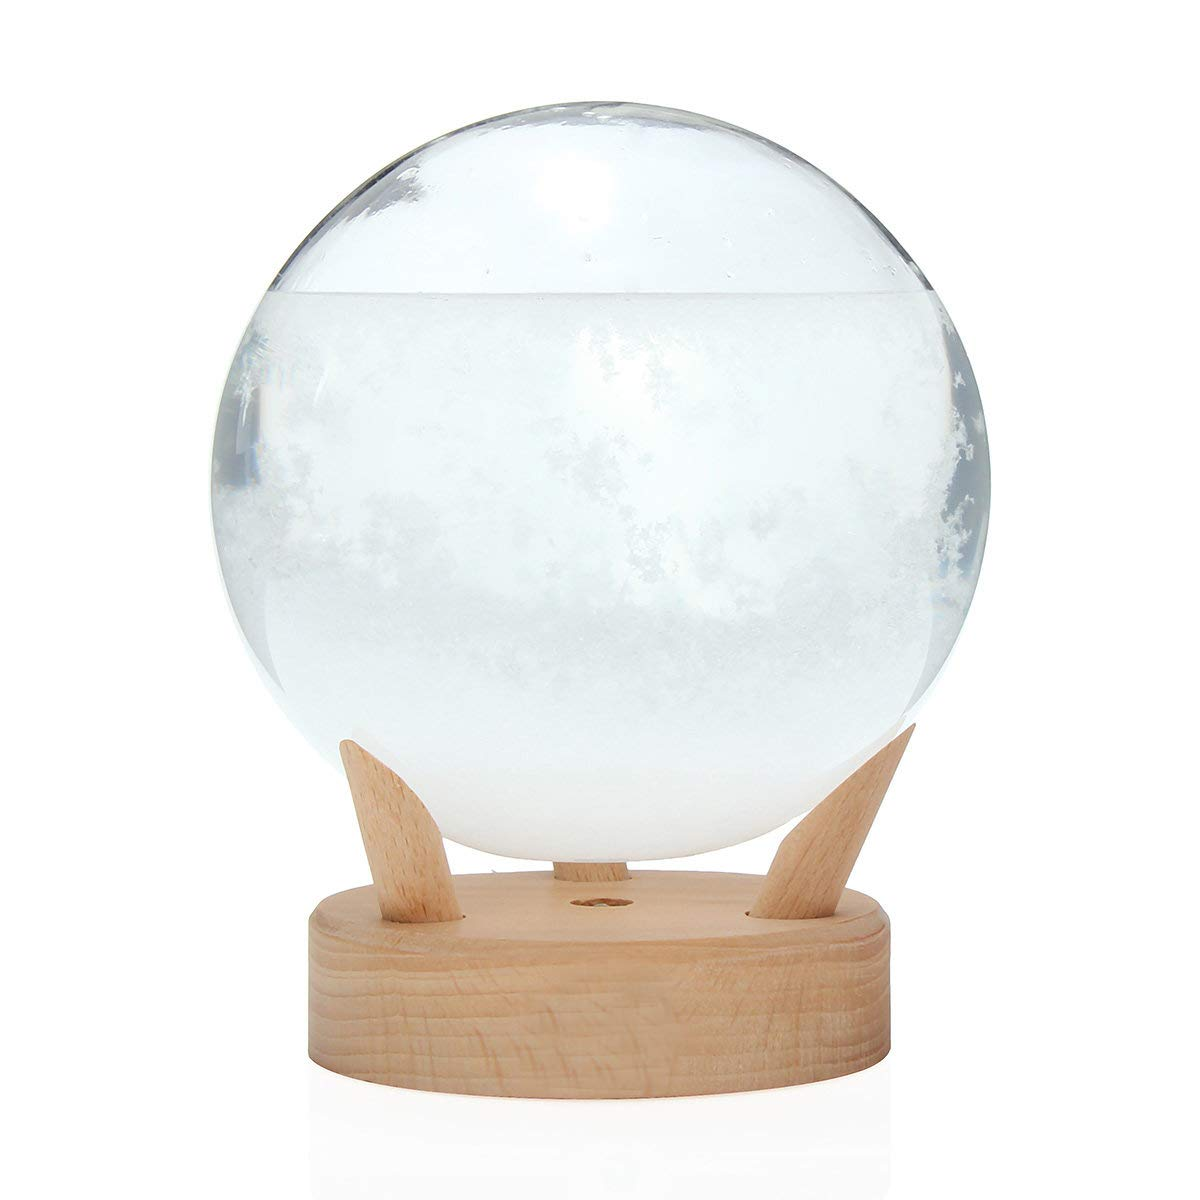 "Unique Gadgets & Toys Storm Glass Weather Forecaster Stylish Decorative Circular Shape Barometer (6"" H x 4.75"" D)"